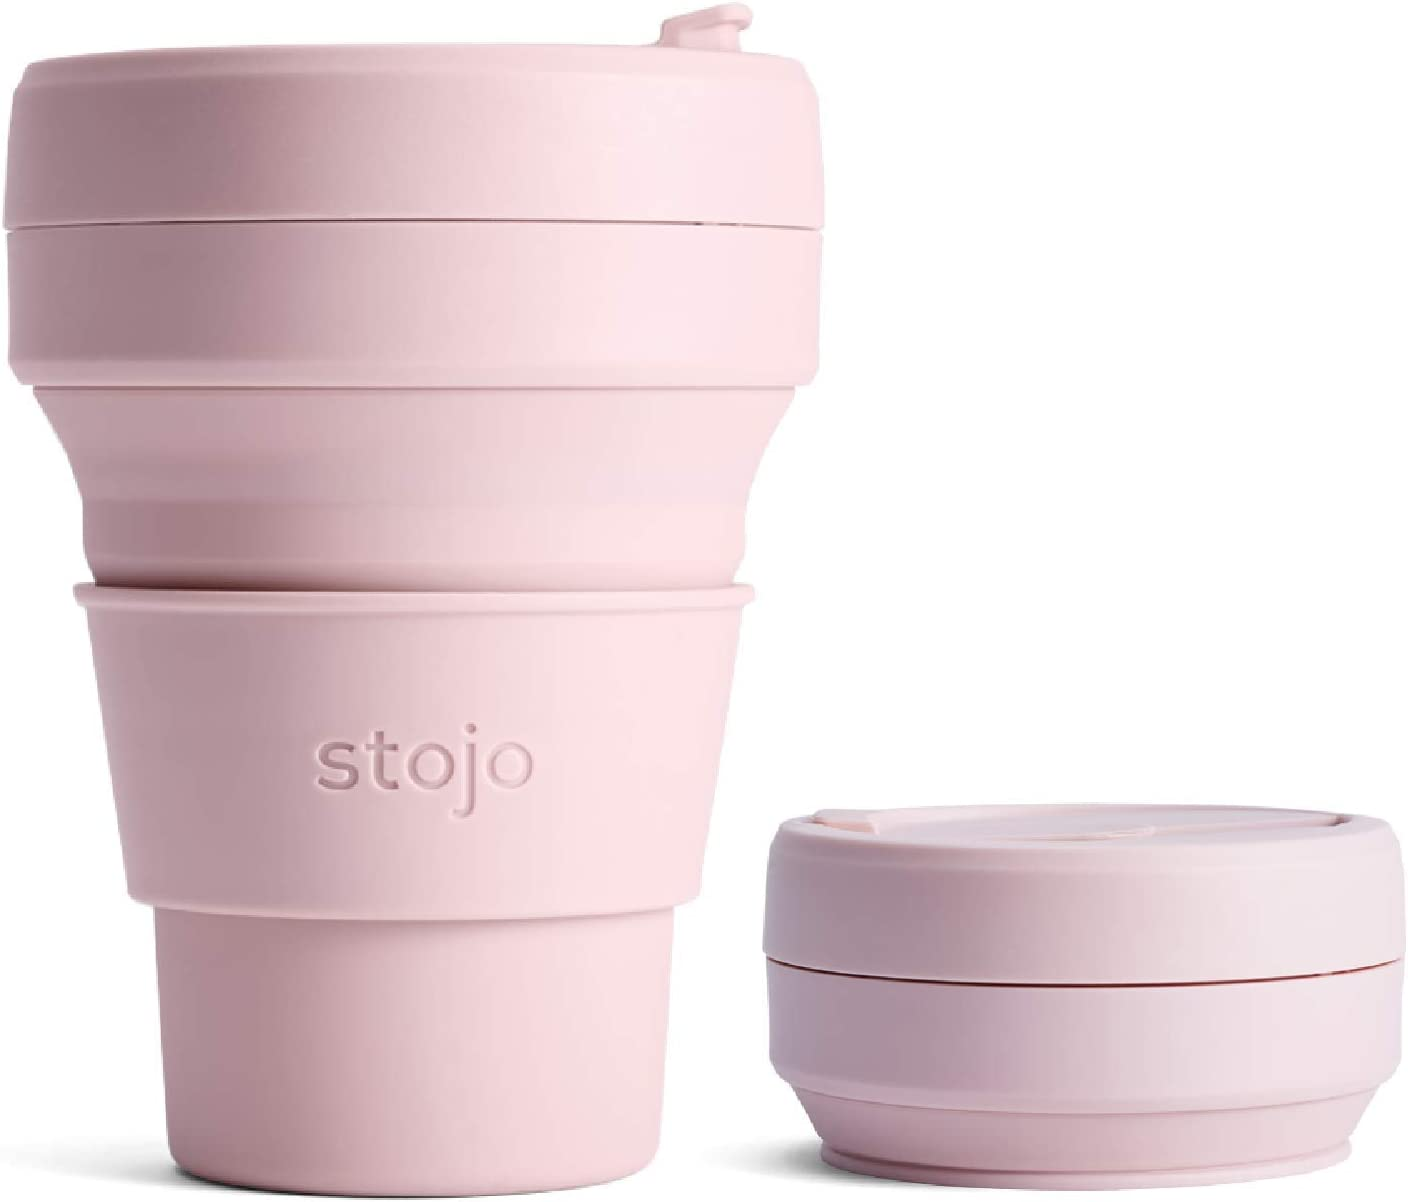 Stojo On The Go Coffee Cup | Mini Collapsible Silicone Travel Cup – Carnation Pink, 8oz / 236ml | No Straw Included